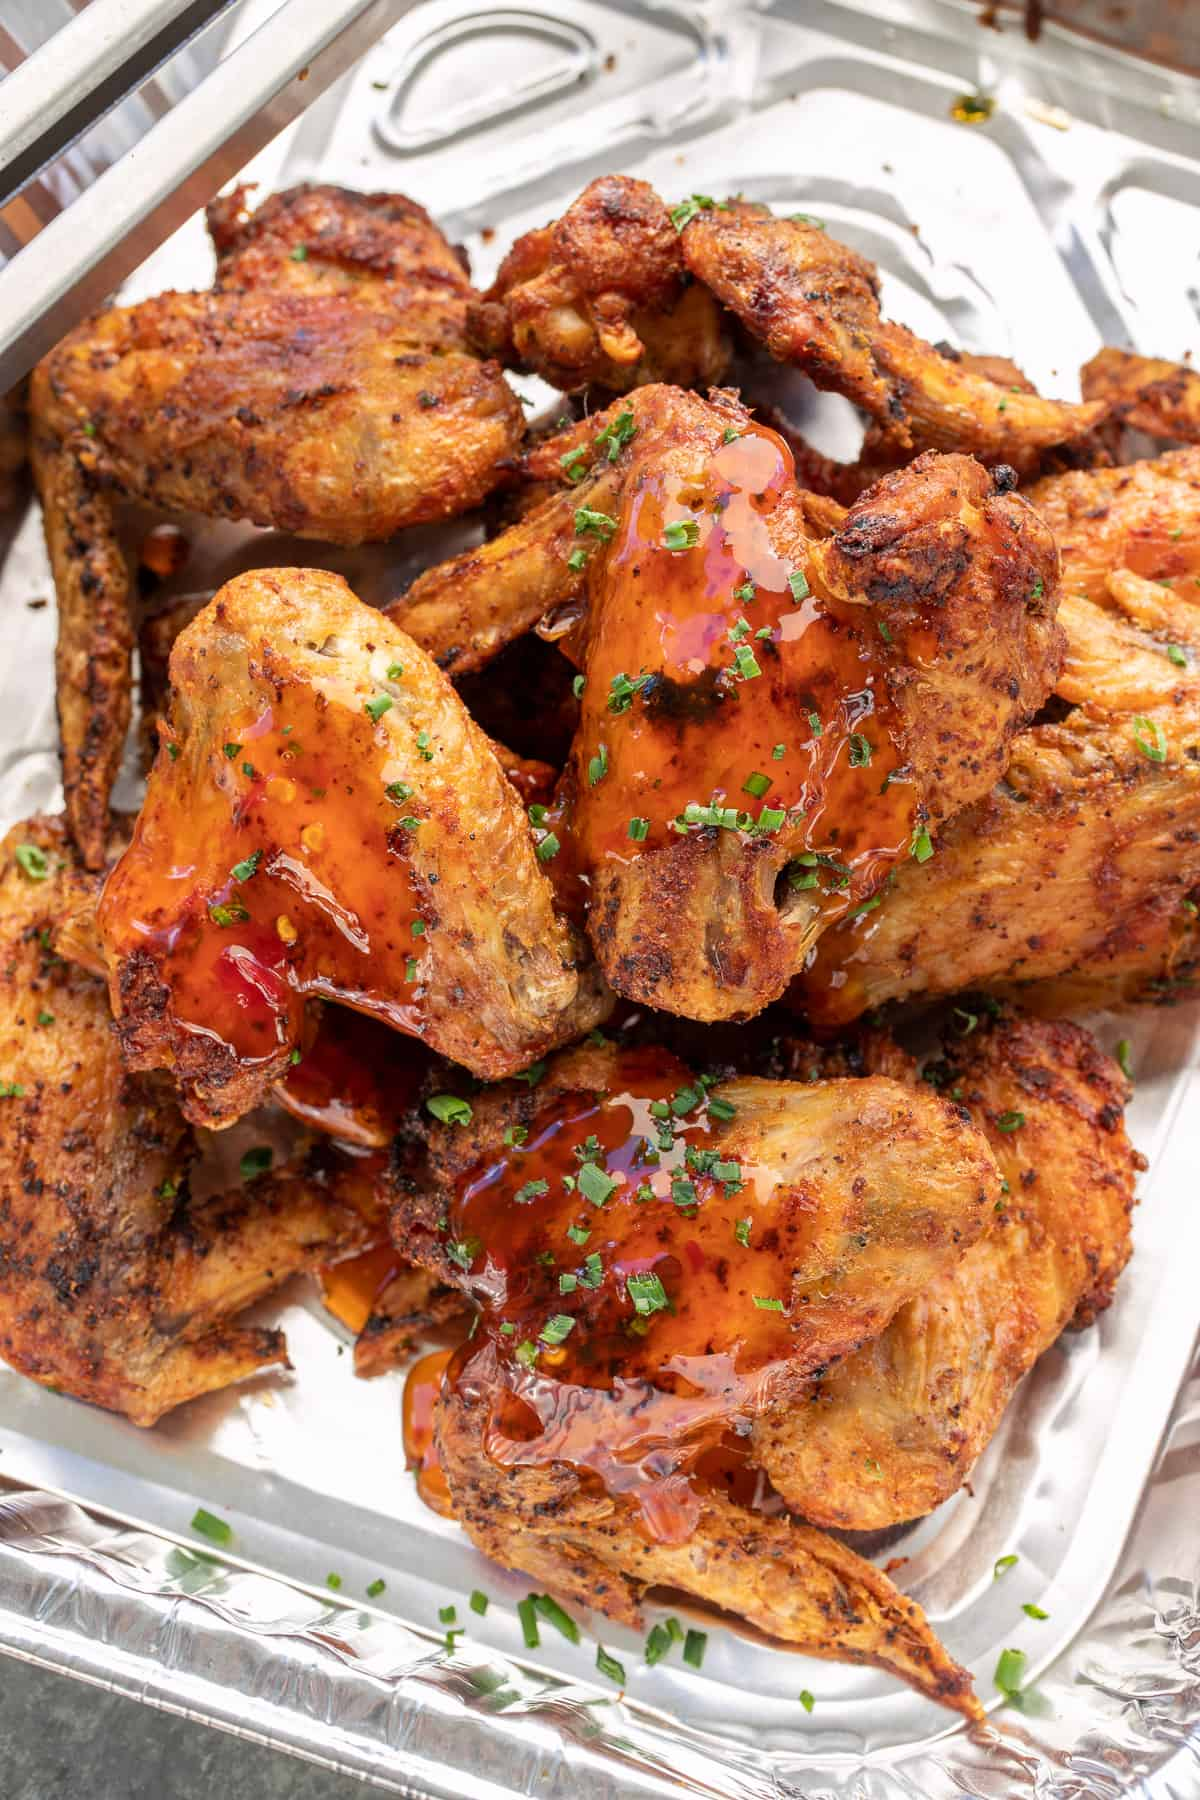 Air Fryer Chicken wings coated with sauce, overhead view.